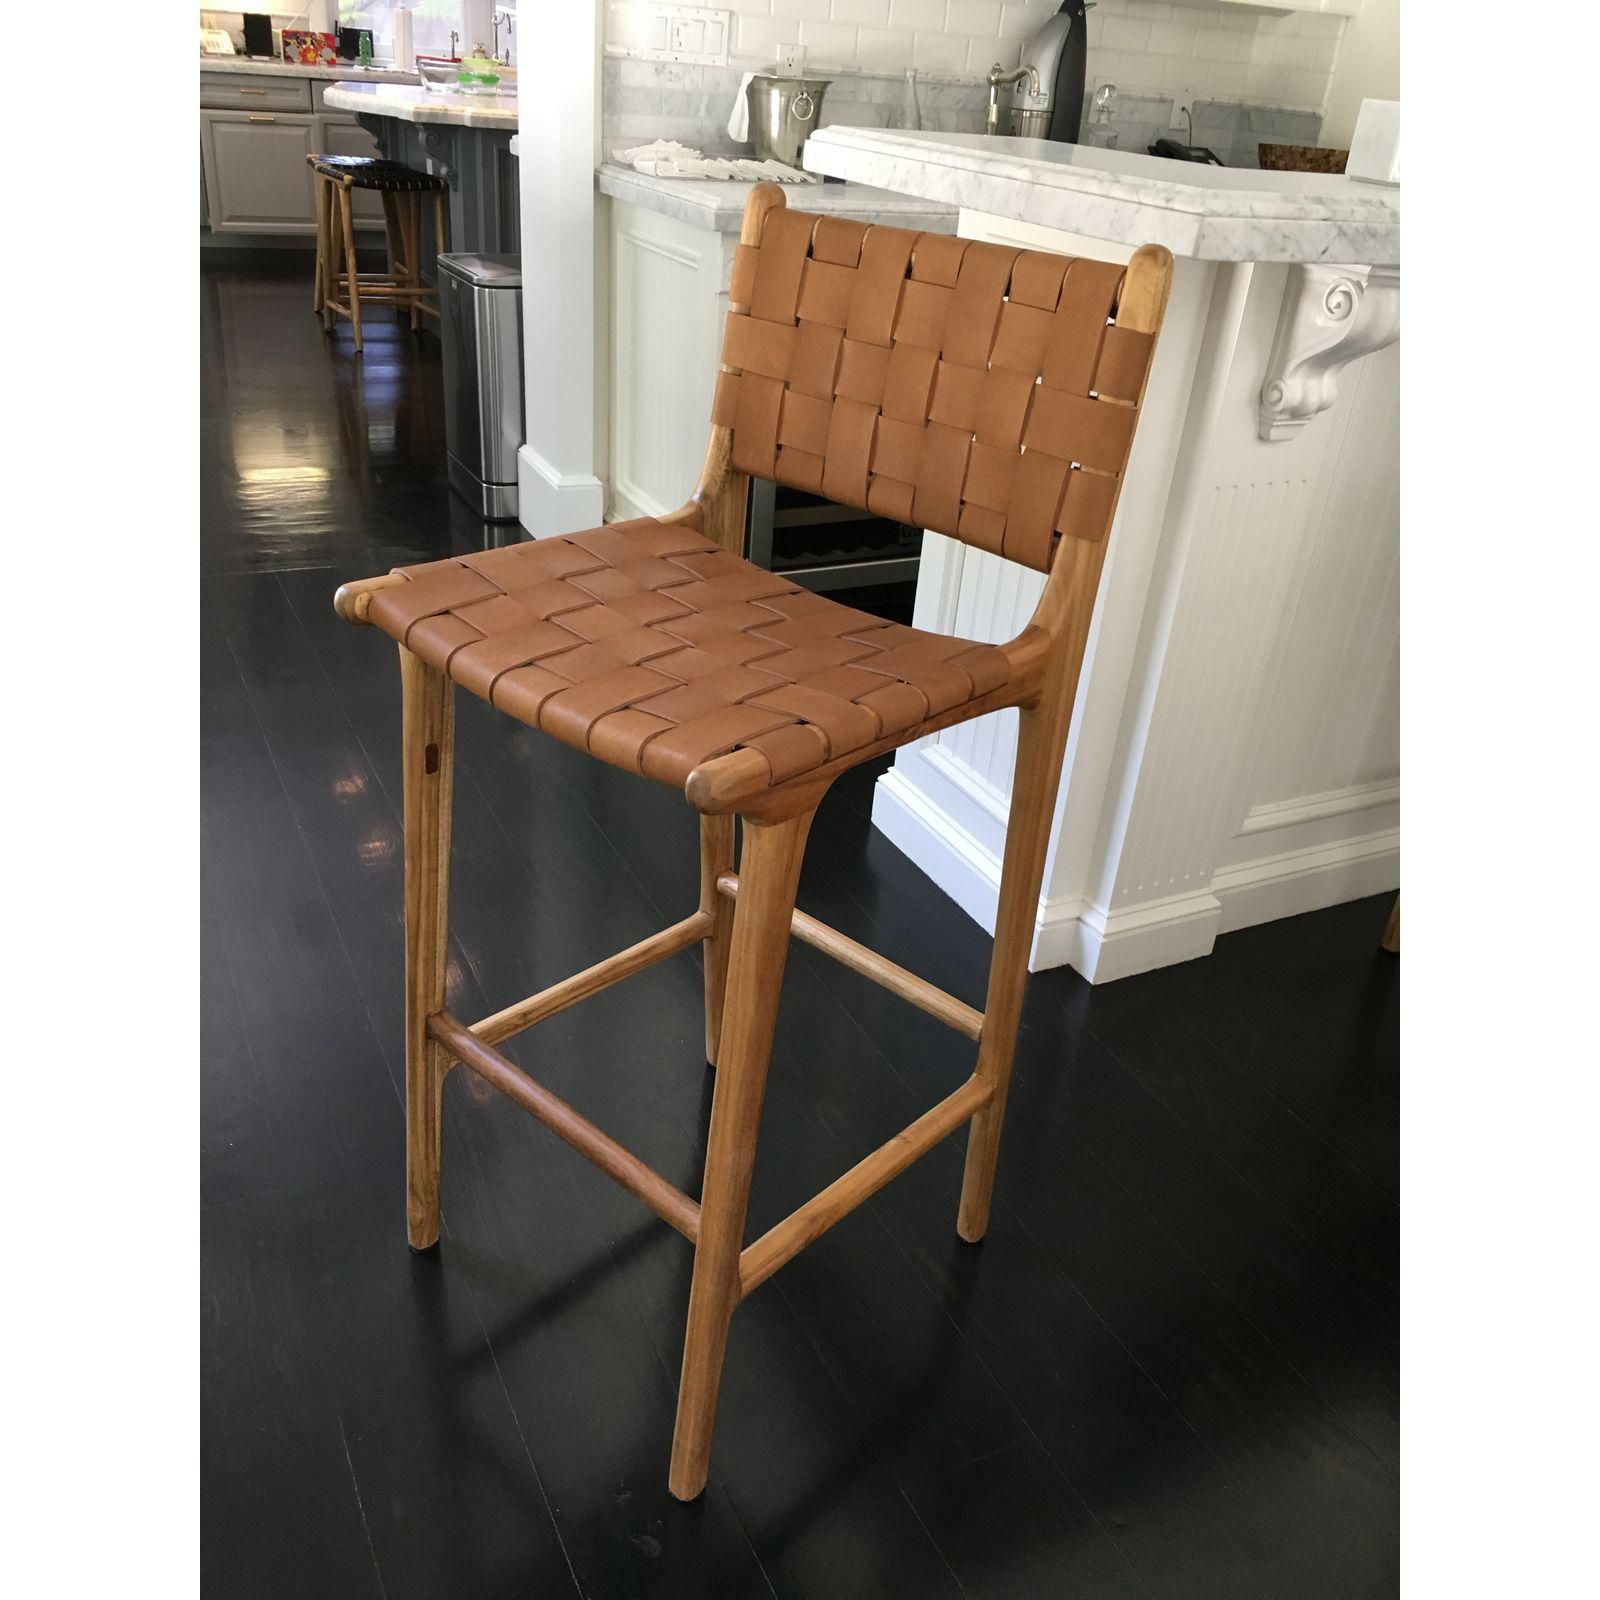 Saffron Poe Woven Leather Strap Counter Stool Counter Stools